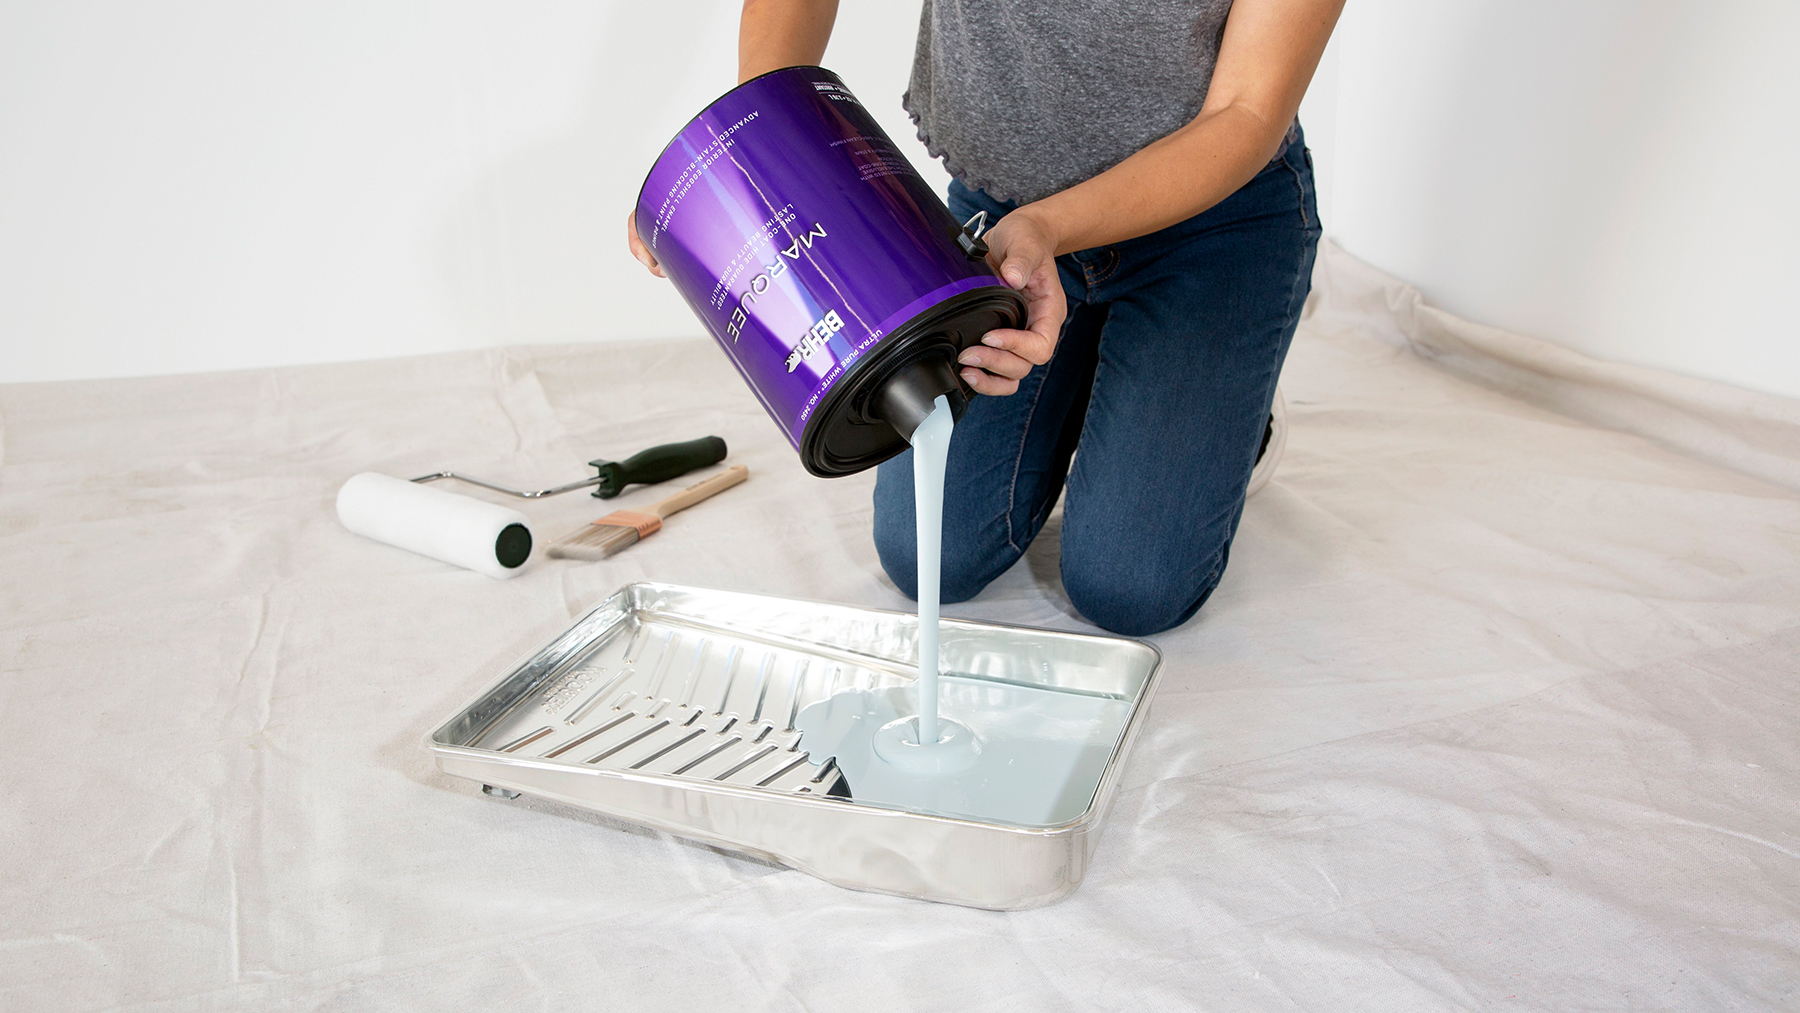 behr-eco-friendly-paint-can